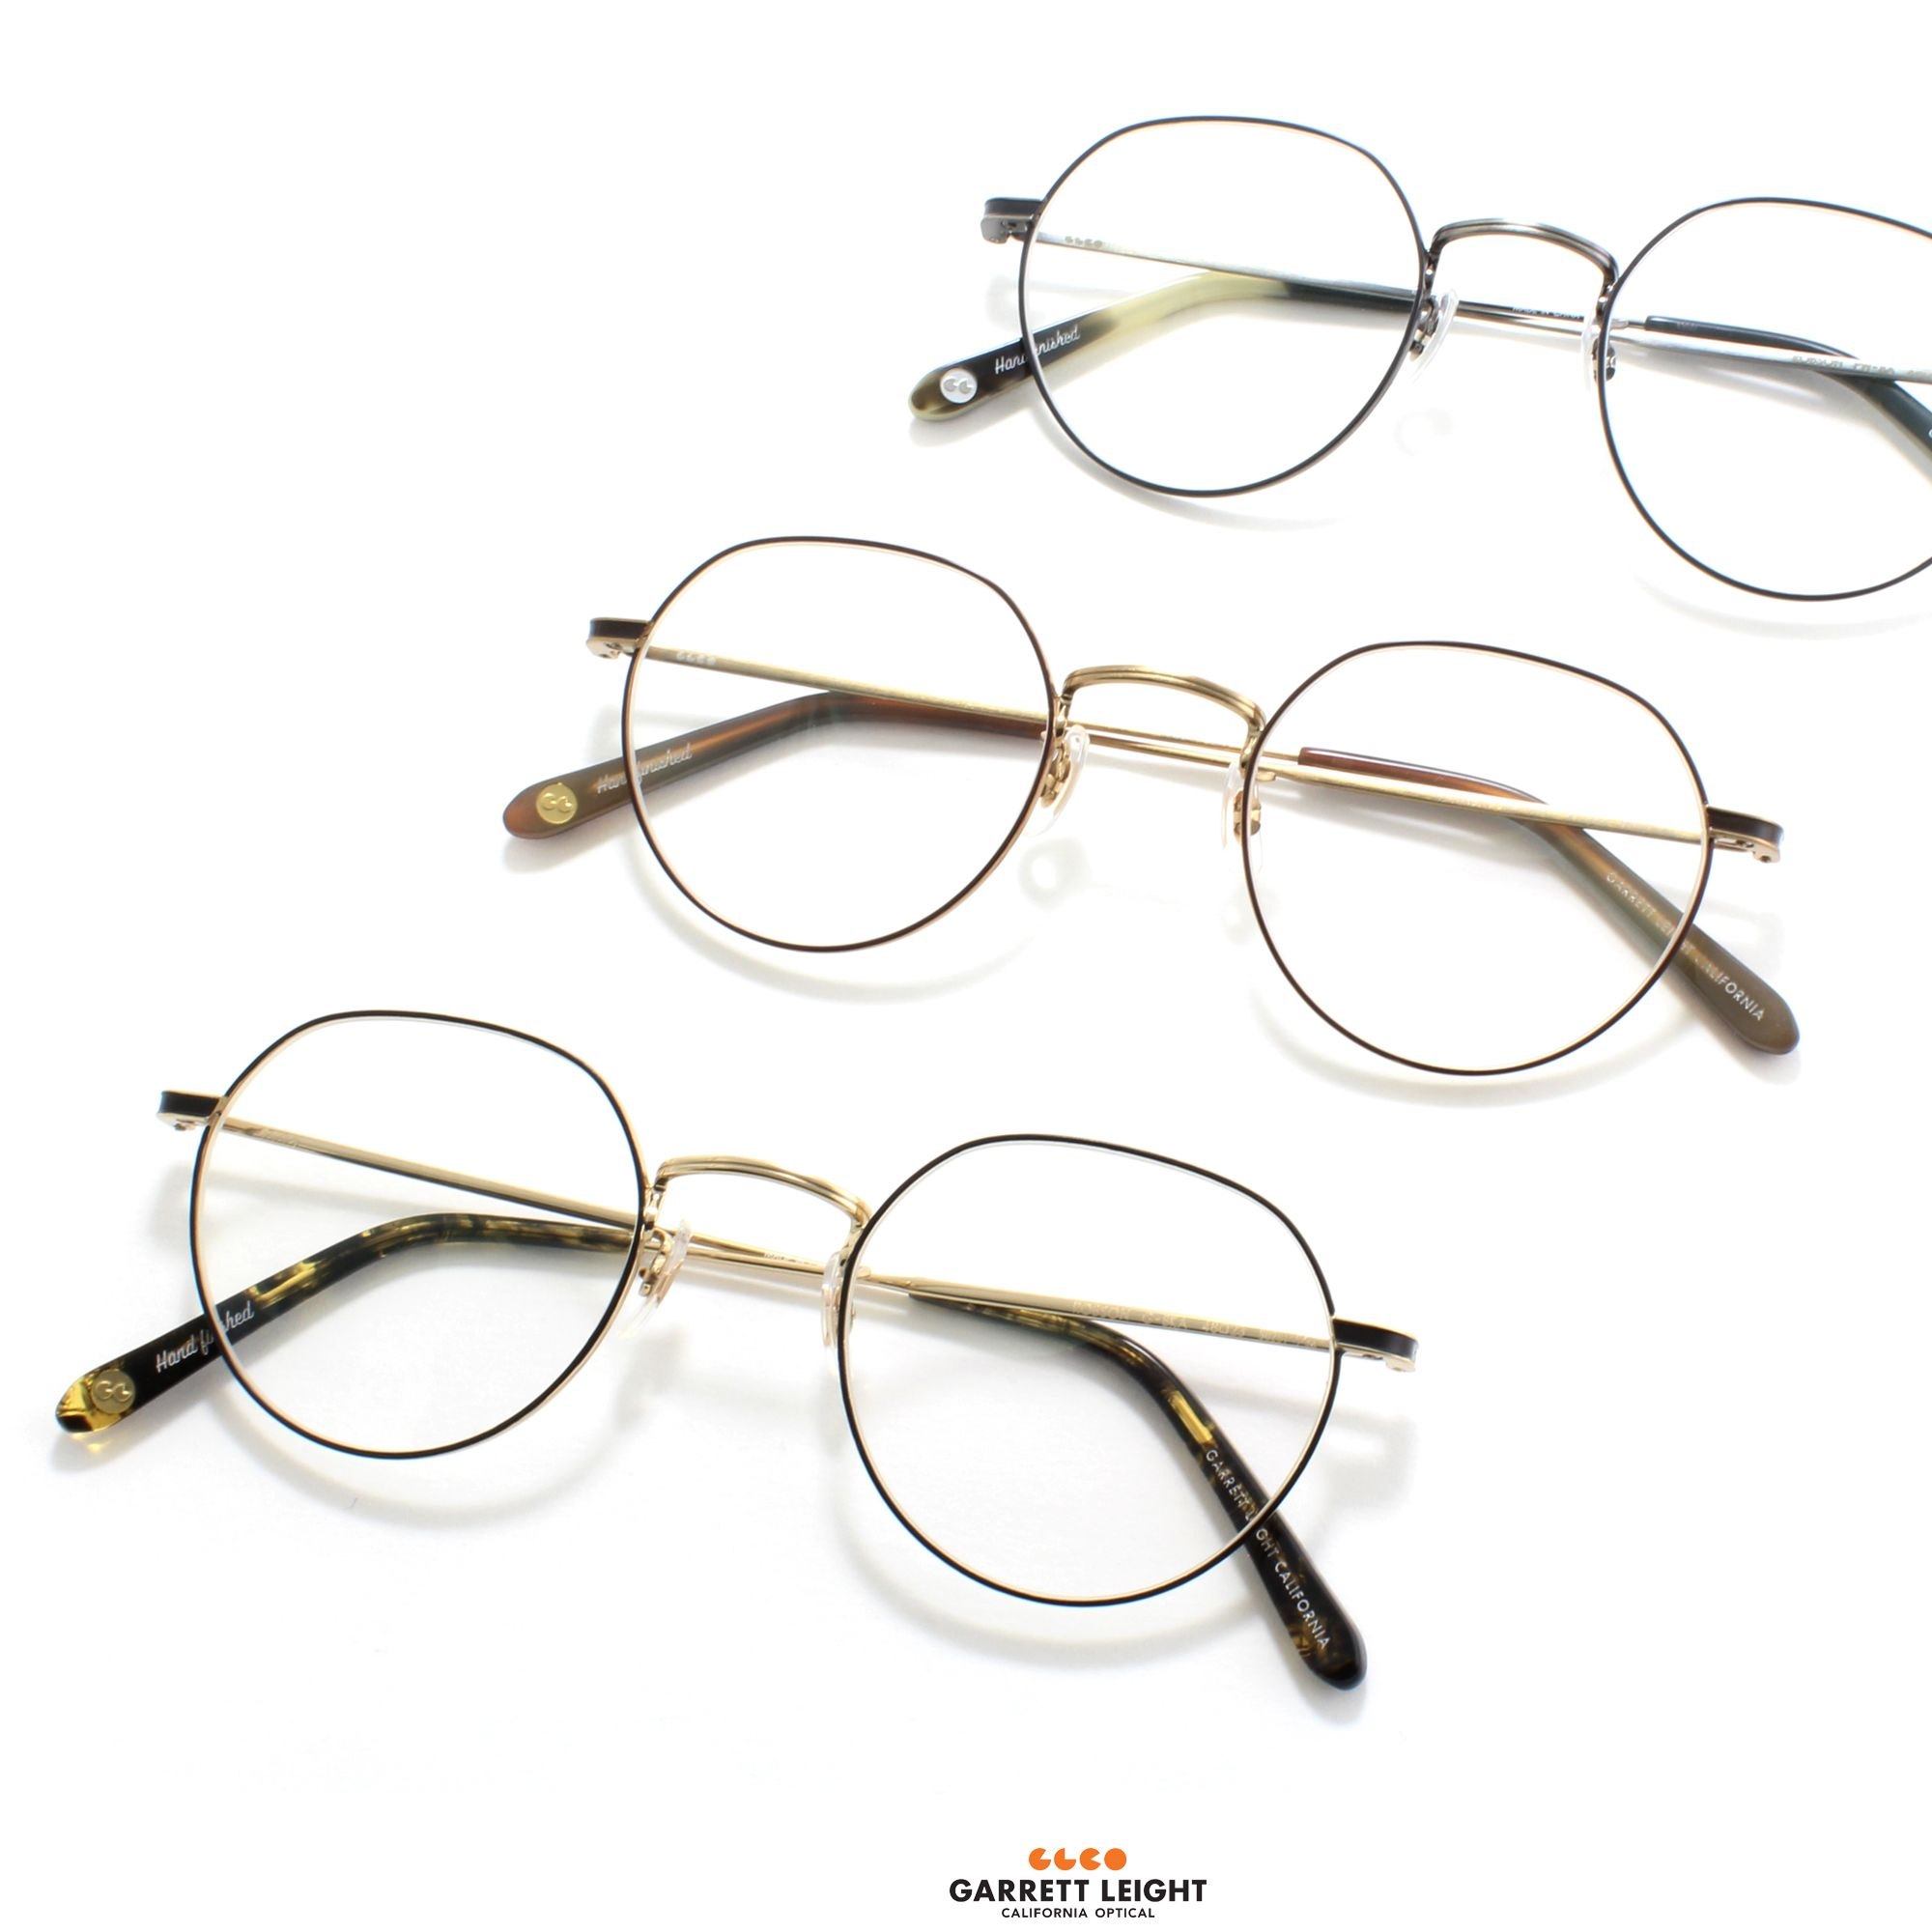 c15833ab162 The Garrett Leight - Robson Eyeglasses is a timeless P3 shape with thin  metal construction and a distinctive angled top rim.